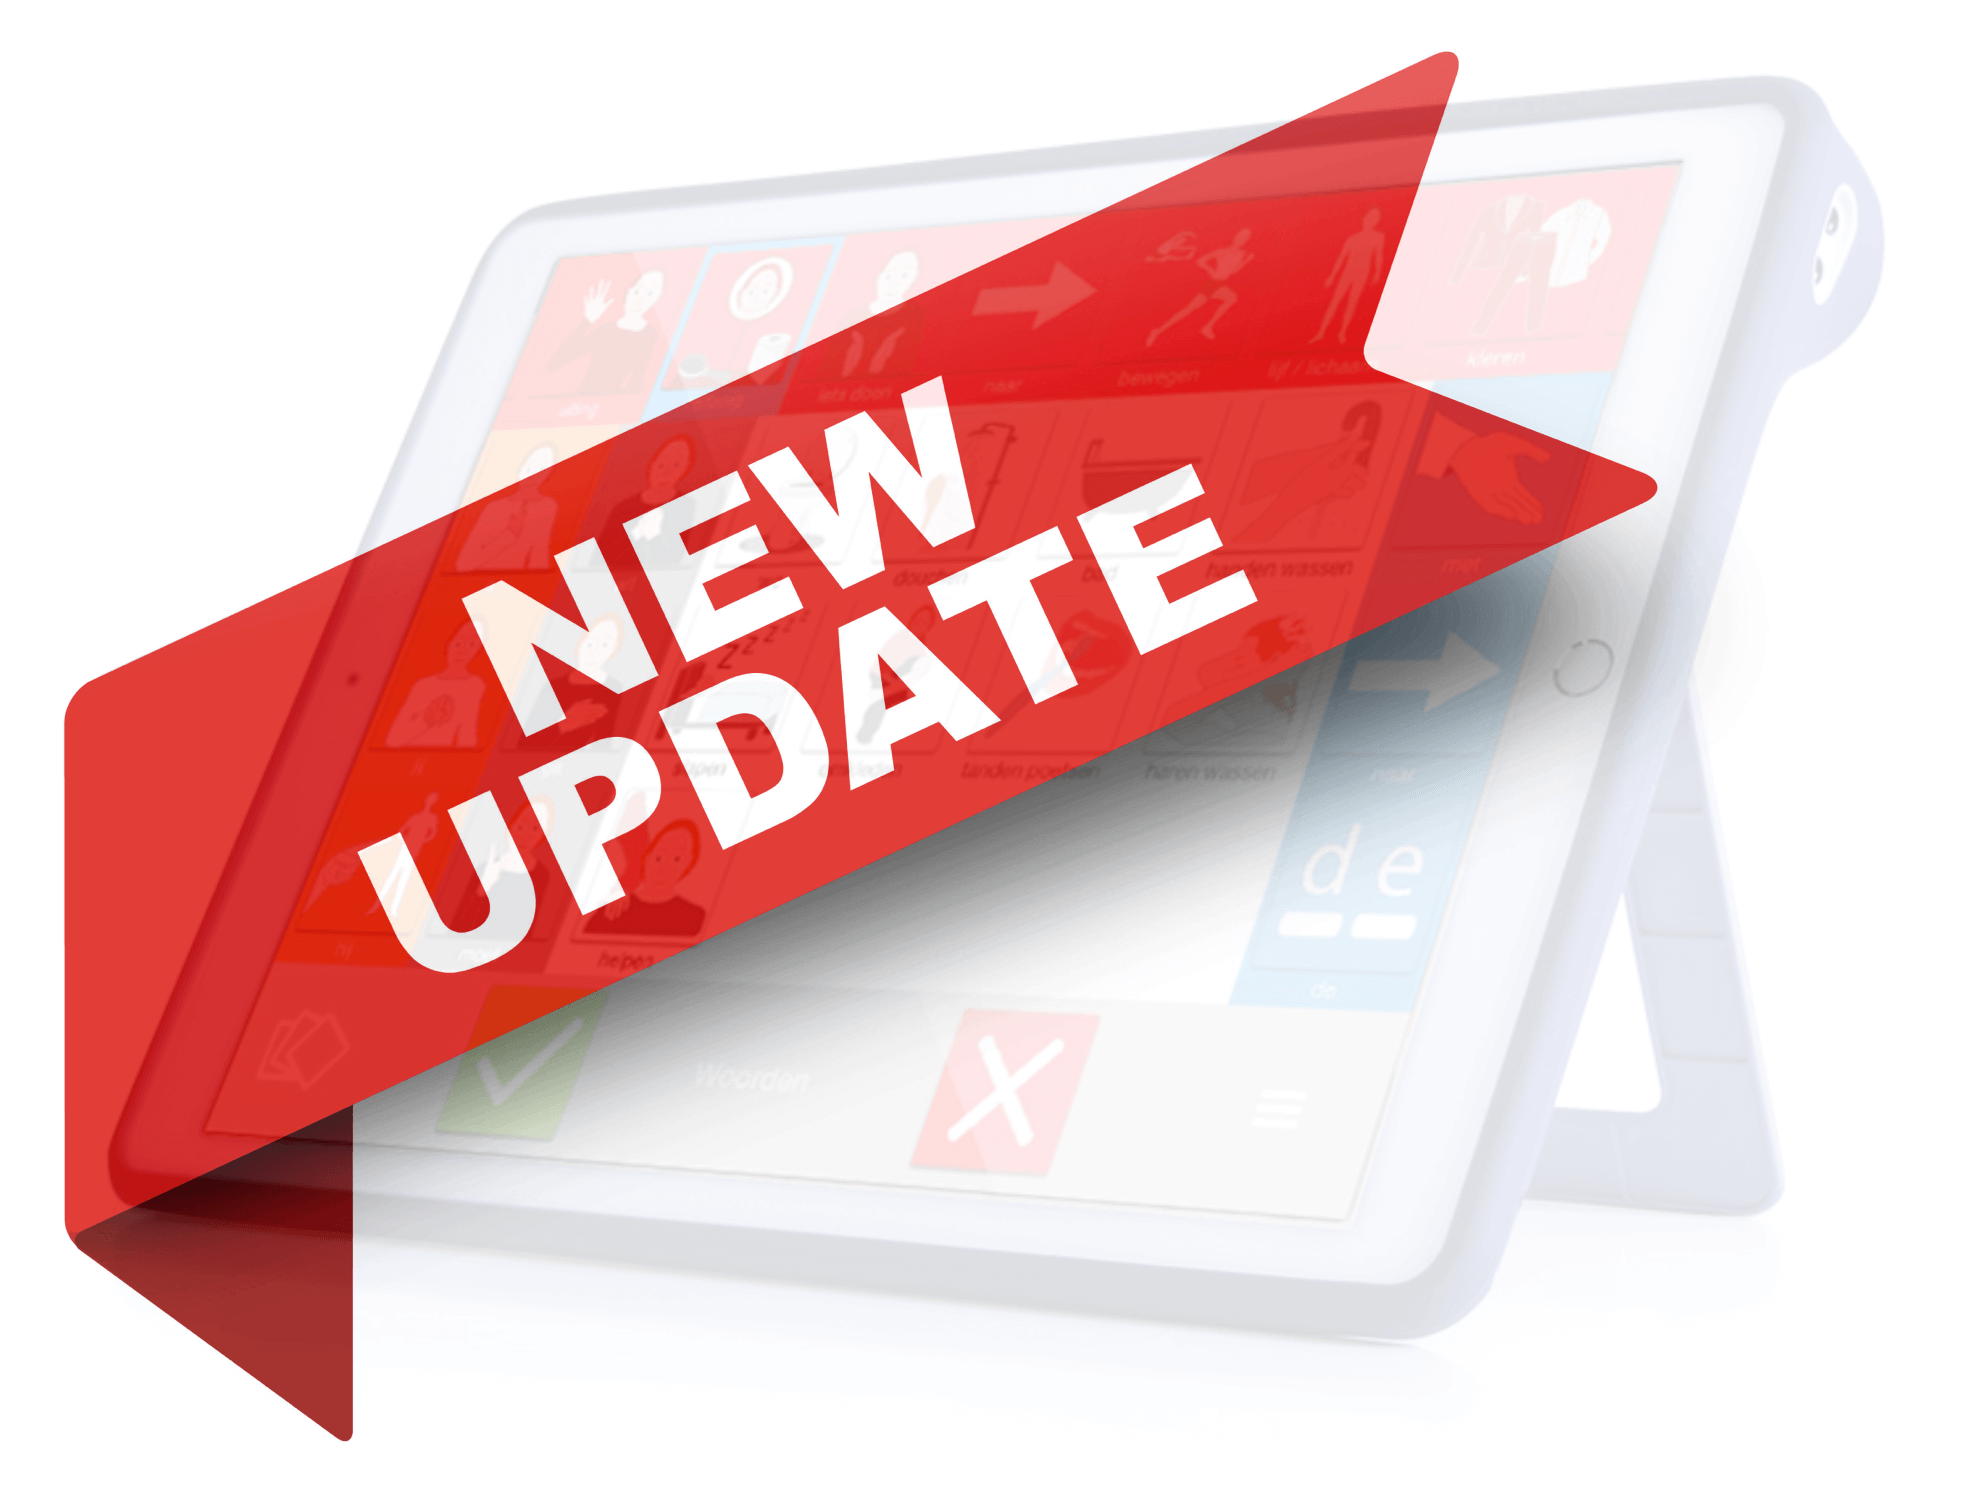 update TouchToTell